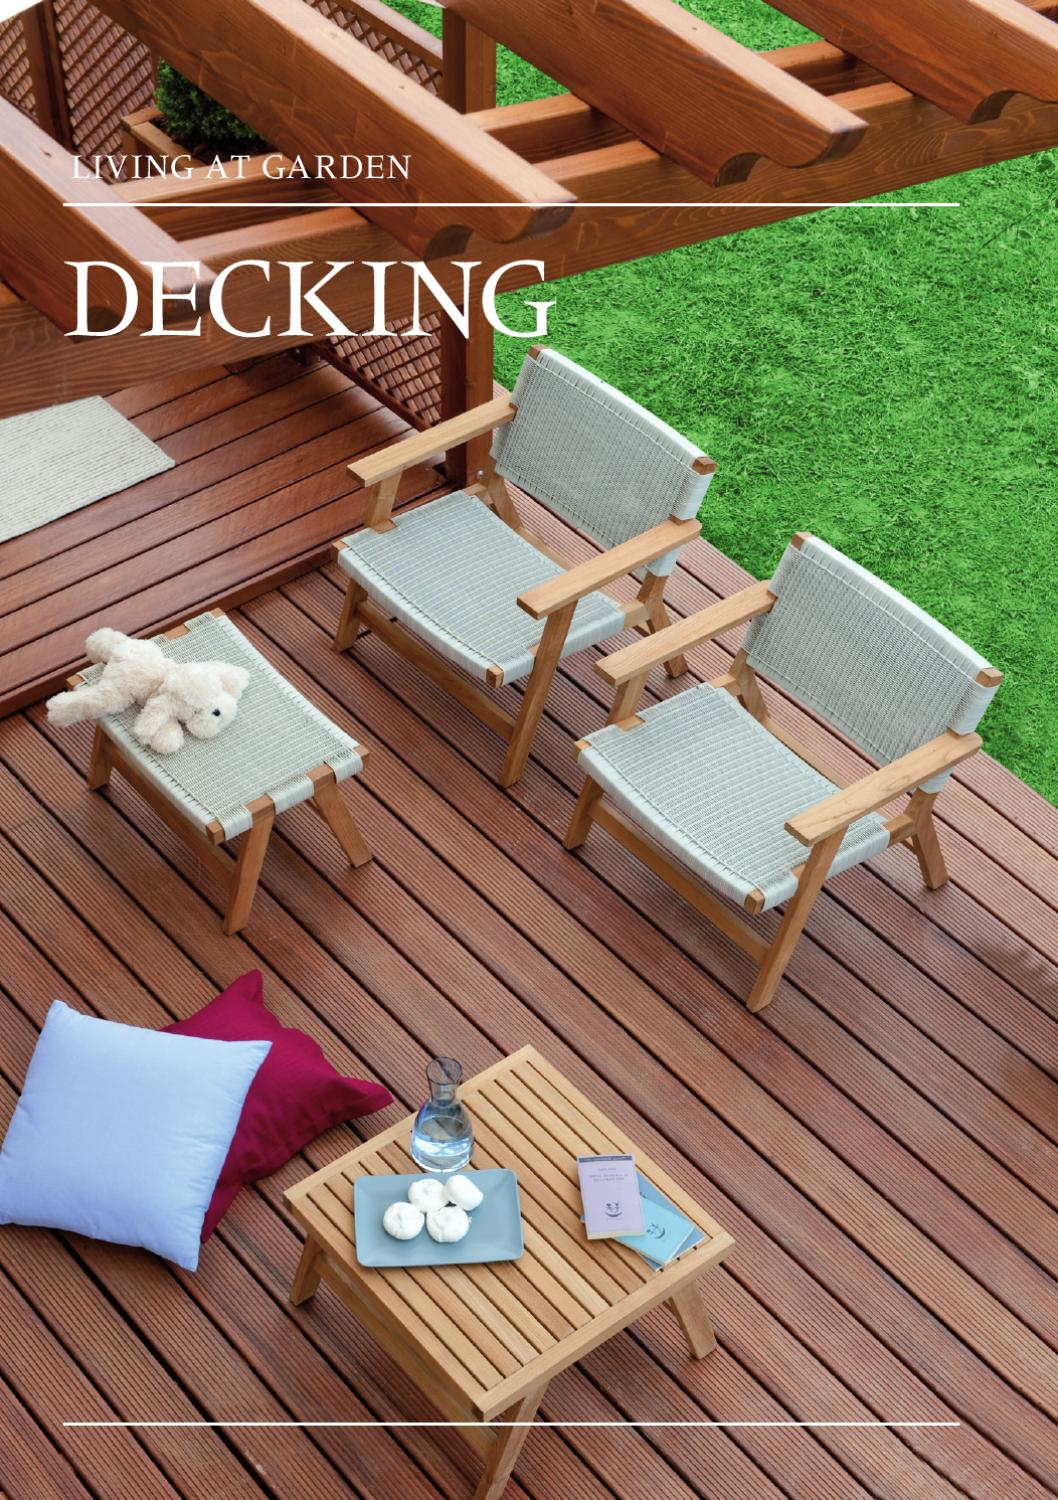 sioux decking by kaiser design issuu. Black Bedroom Furniture Sets. Home Design Ideas